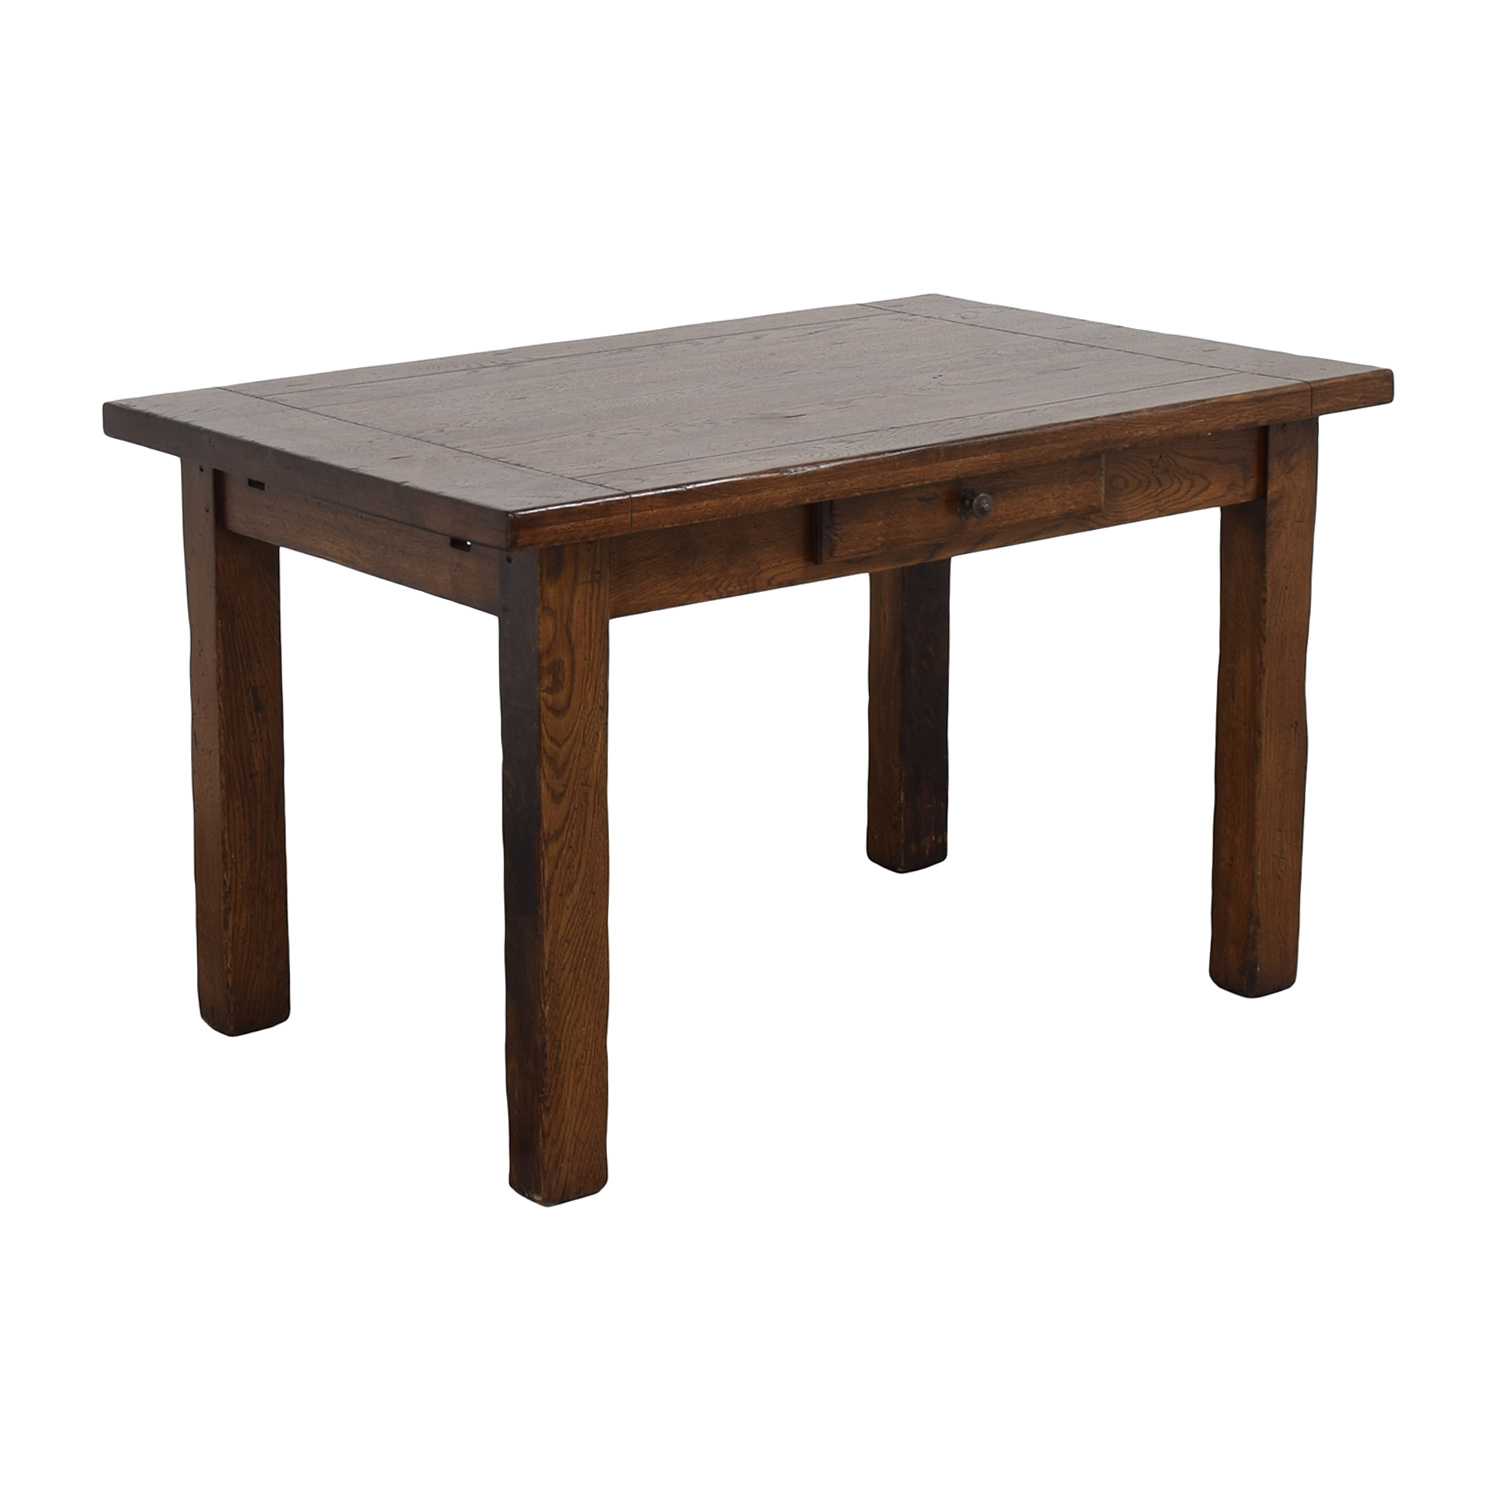 ABC Carpet & Home ABC Carpet & Home Dining Table second hand